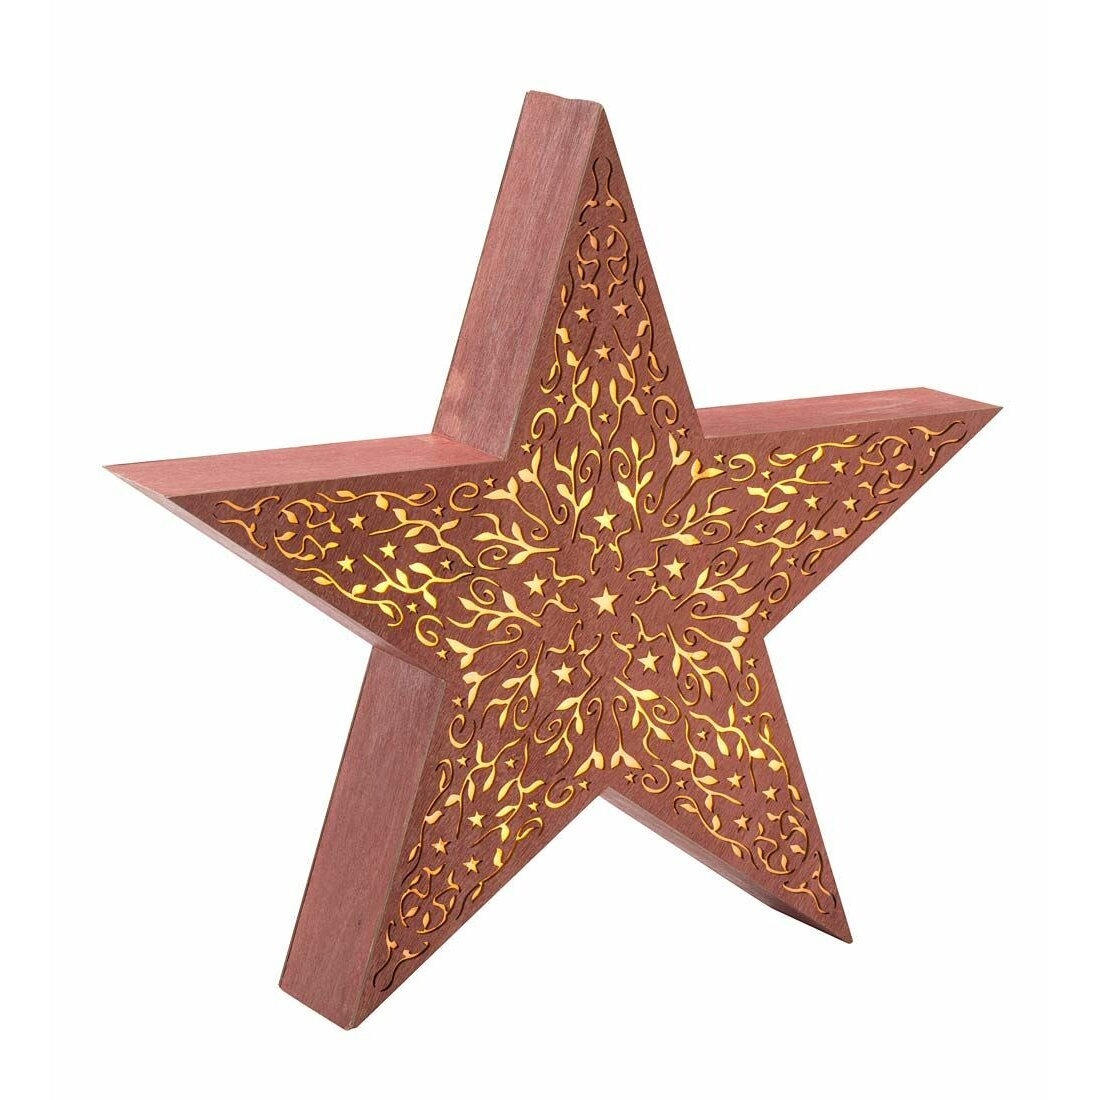 Plow hearth decorative large rustic wood star light Decorative hearth